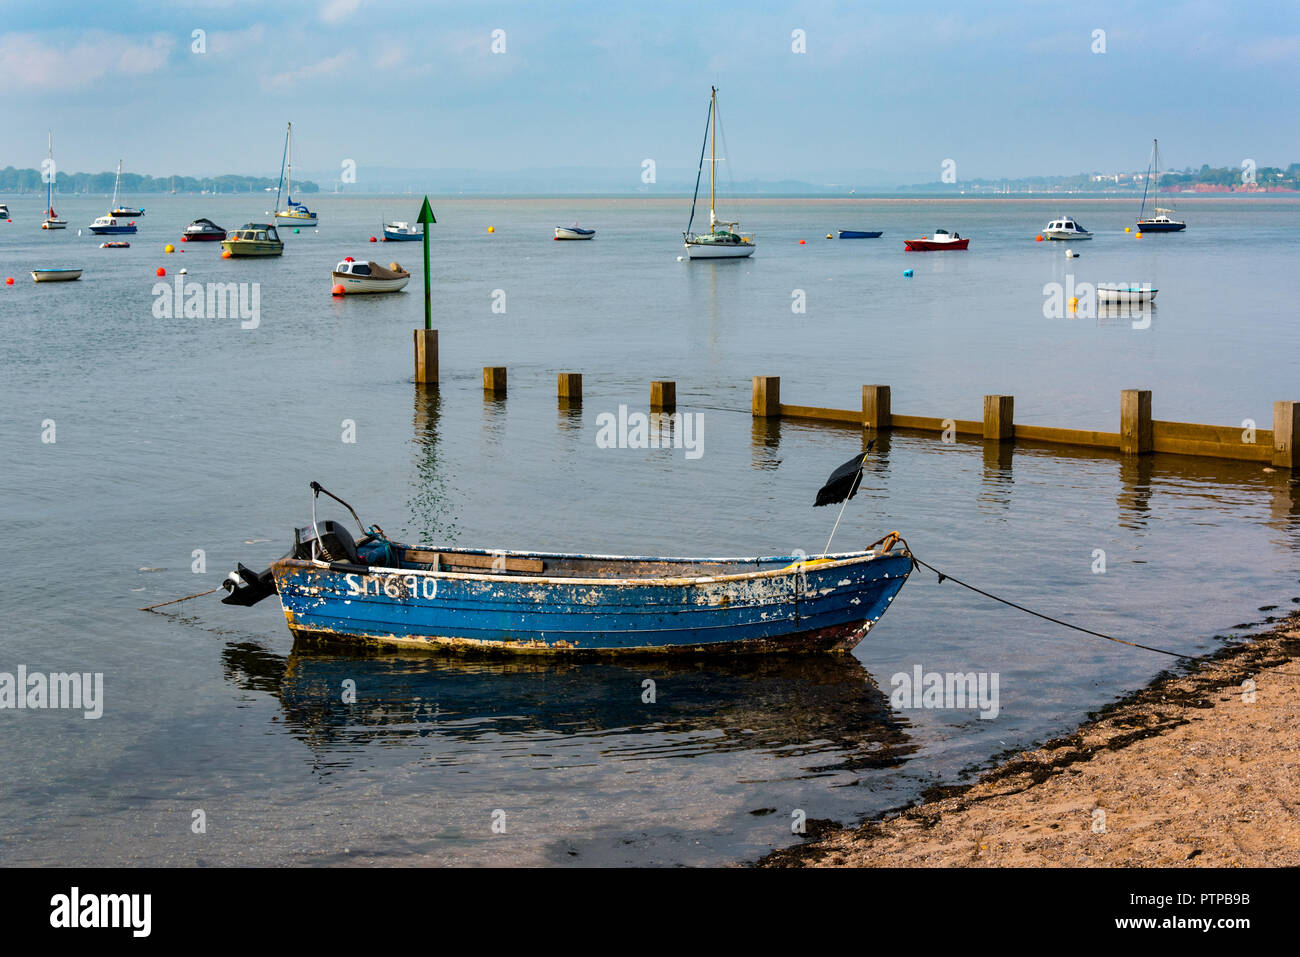 EXMOUTH, DEVON, UK - 05OCT2018:  Old boat  at Shelly Beach, with the Exe Estuary behind. - Stock Image